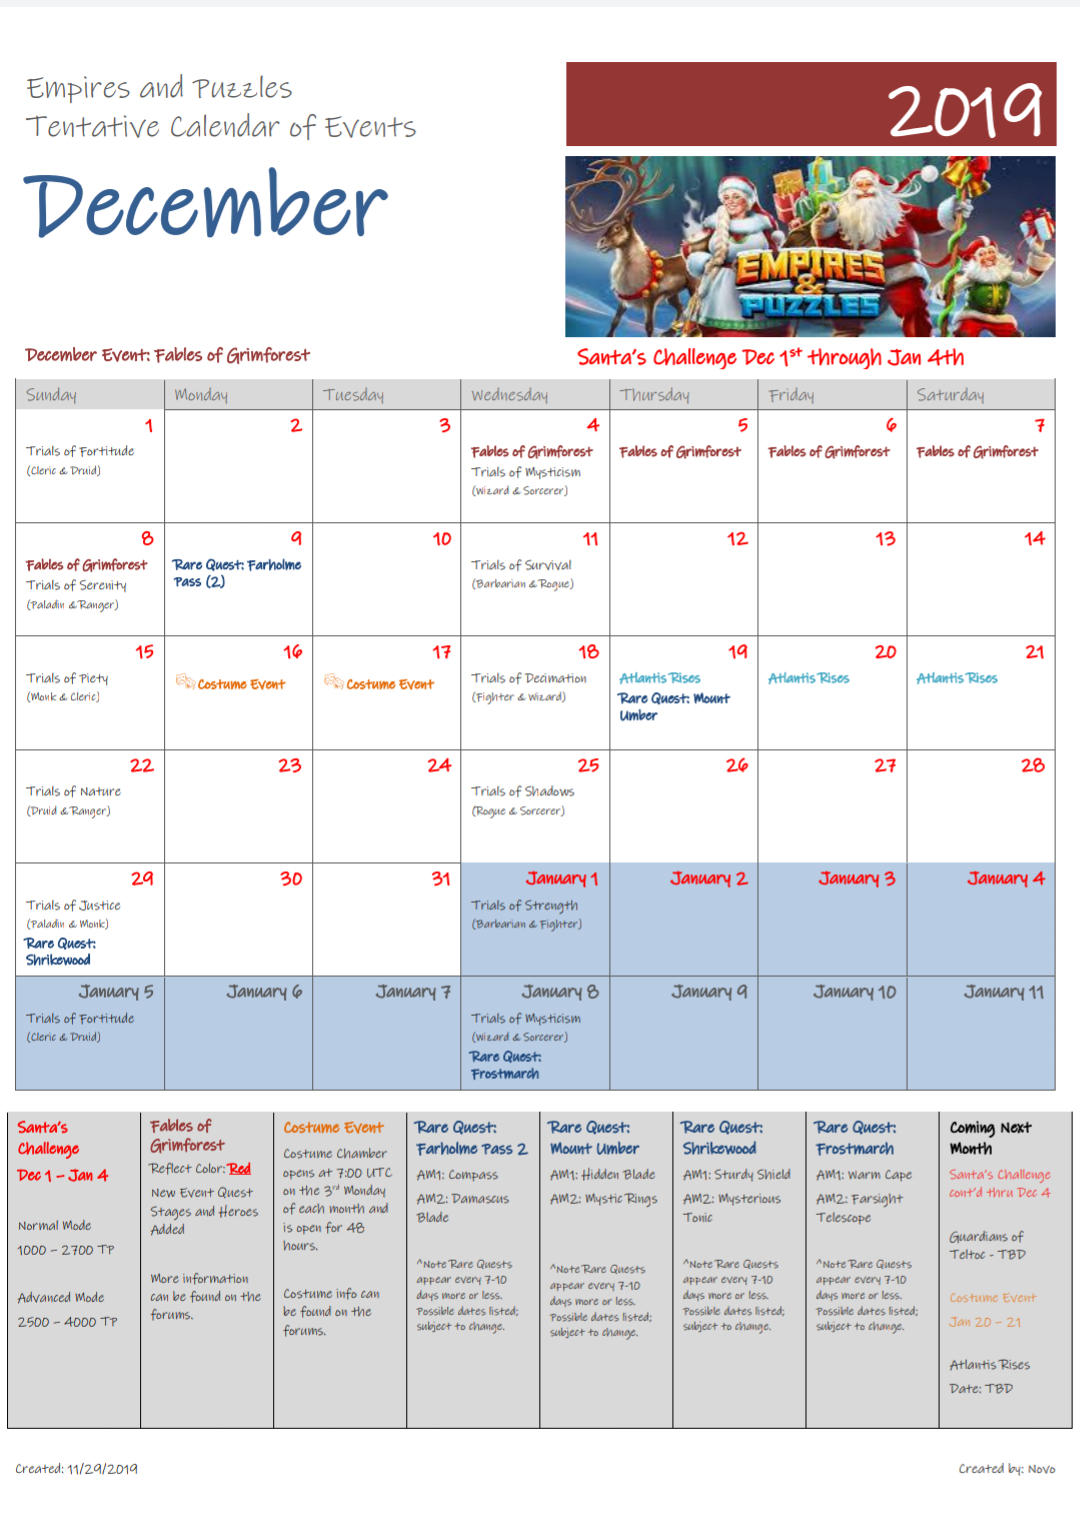 December 2019 Calendar Of Events : Empiresandpuzzles intended for Empires And Puzzles Quest Schedule